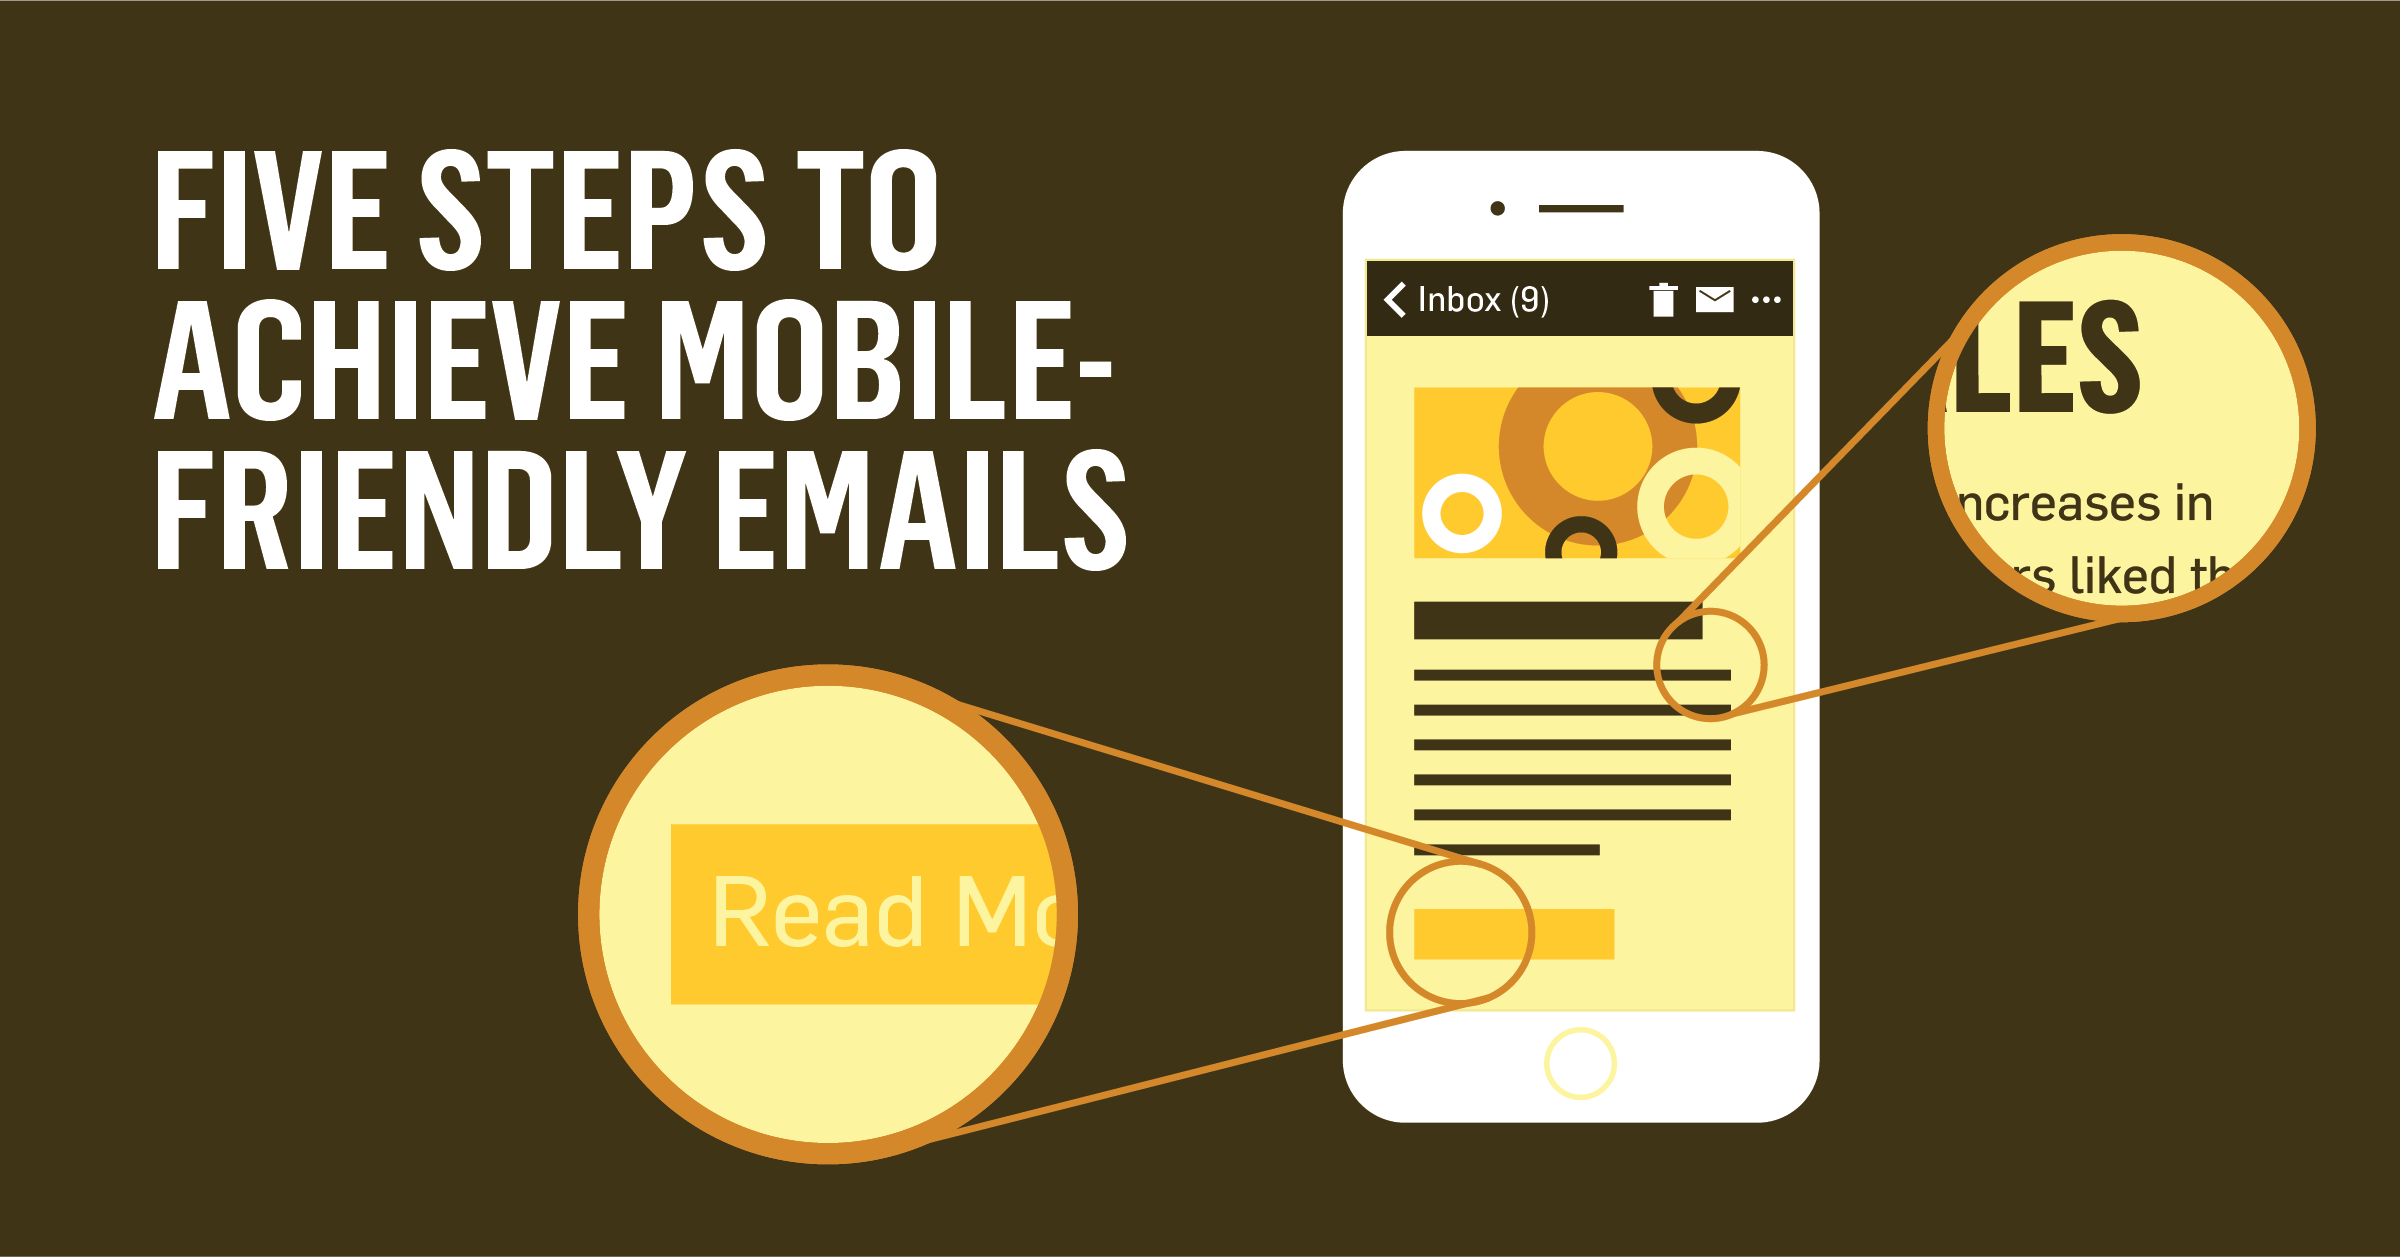 Five Steps to Achieve Mobile-Friendly Emails